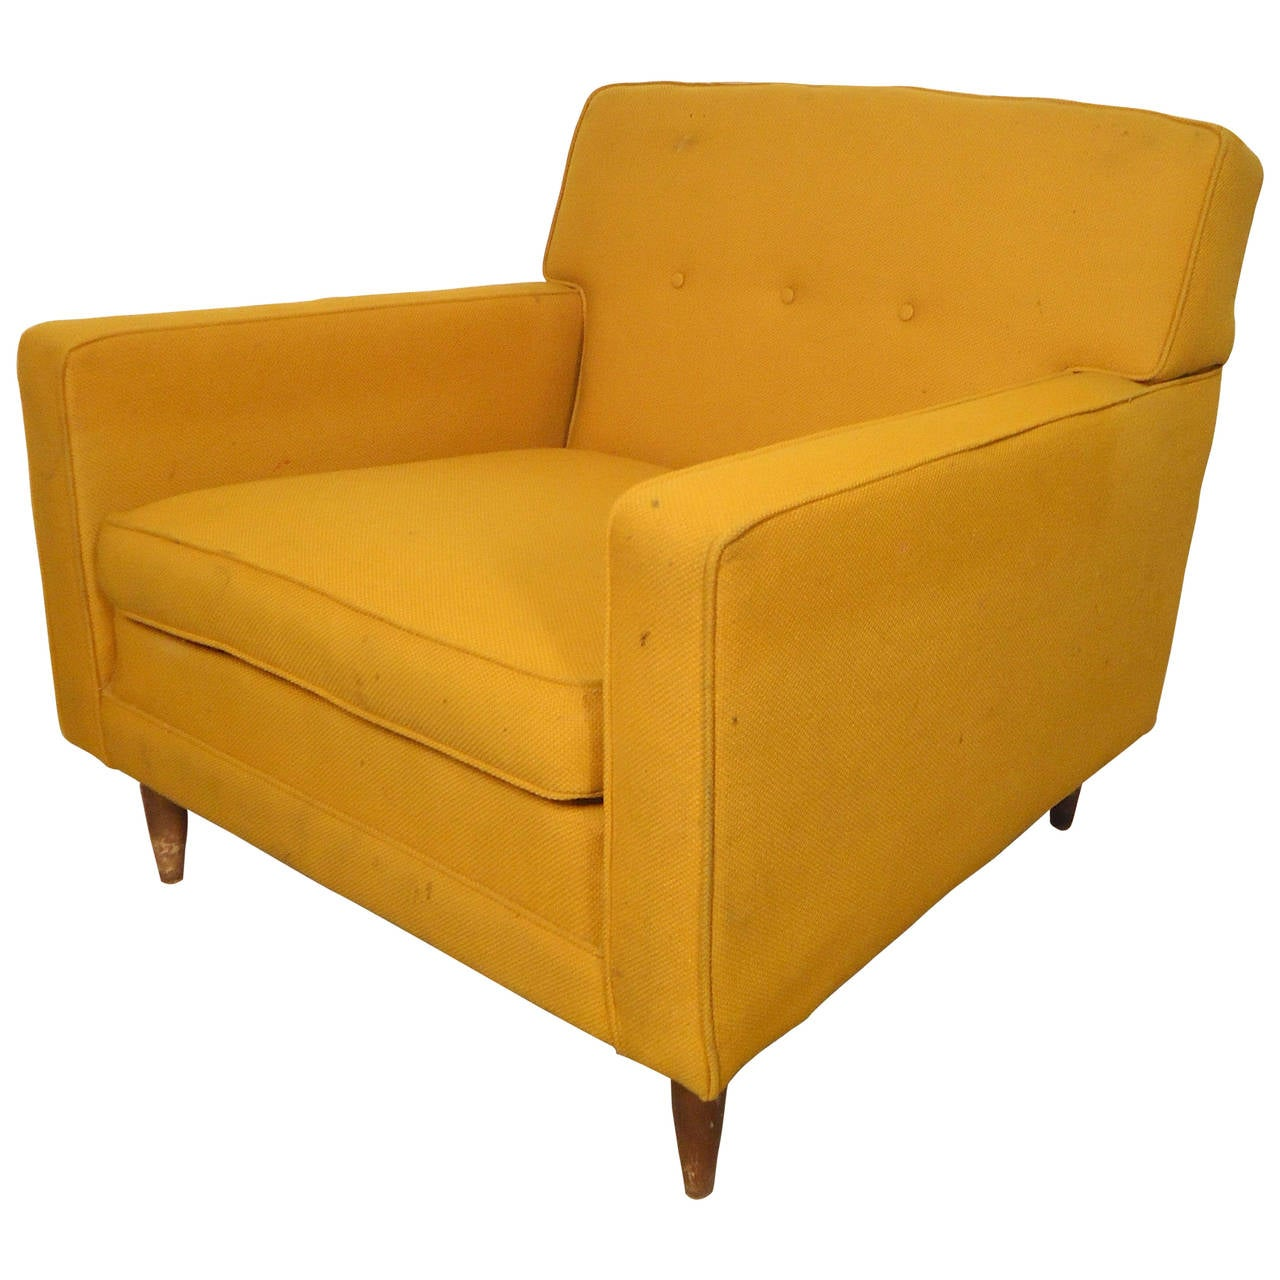 Mid Century Lounge Chair Mid Century Modern Lounge Chair For Sale At 1stdibs